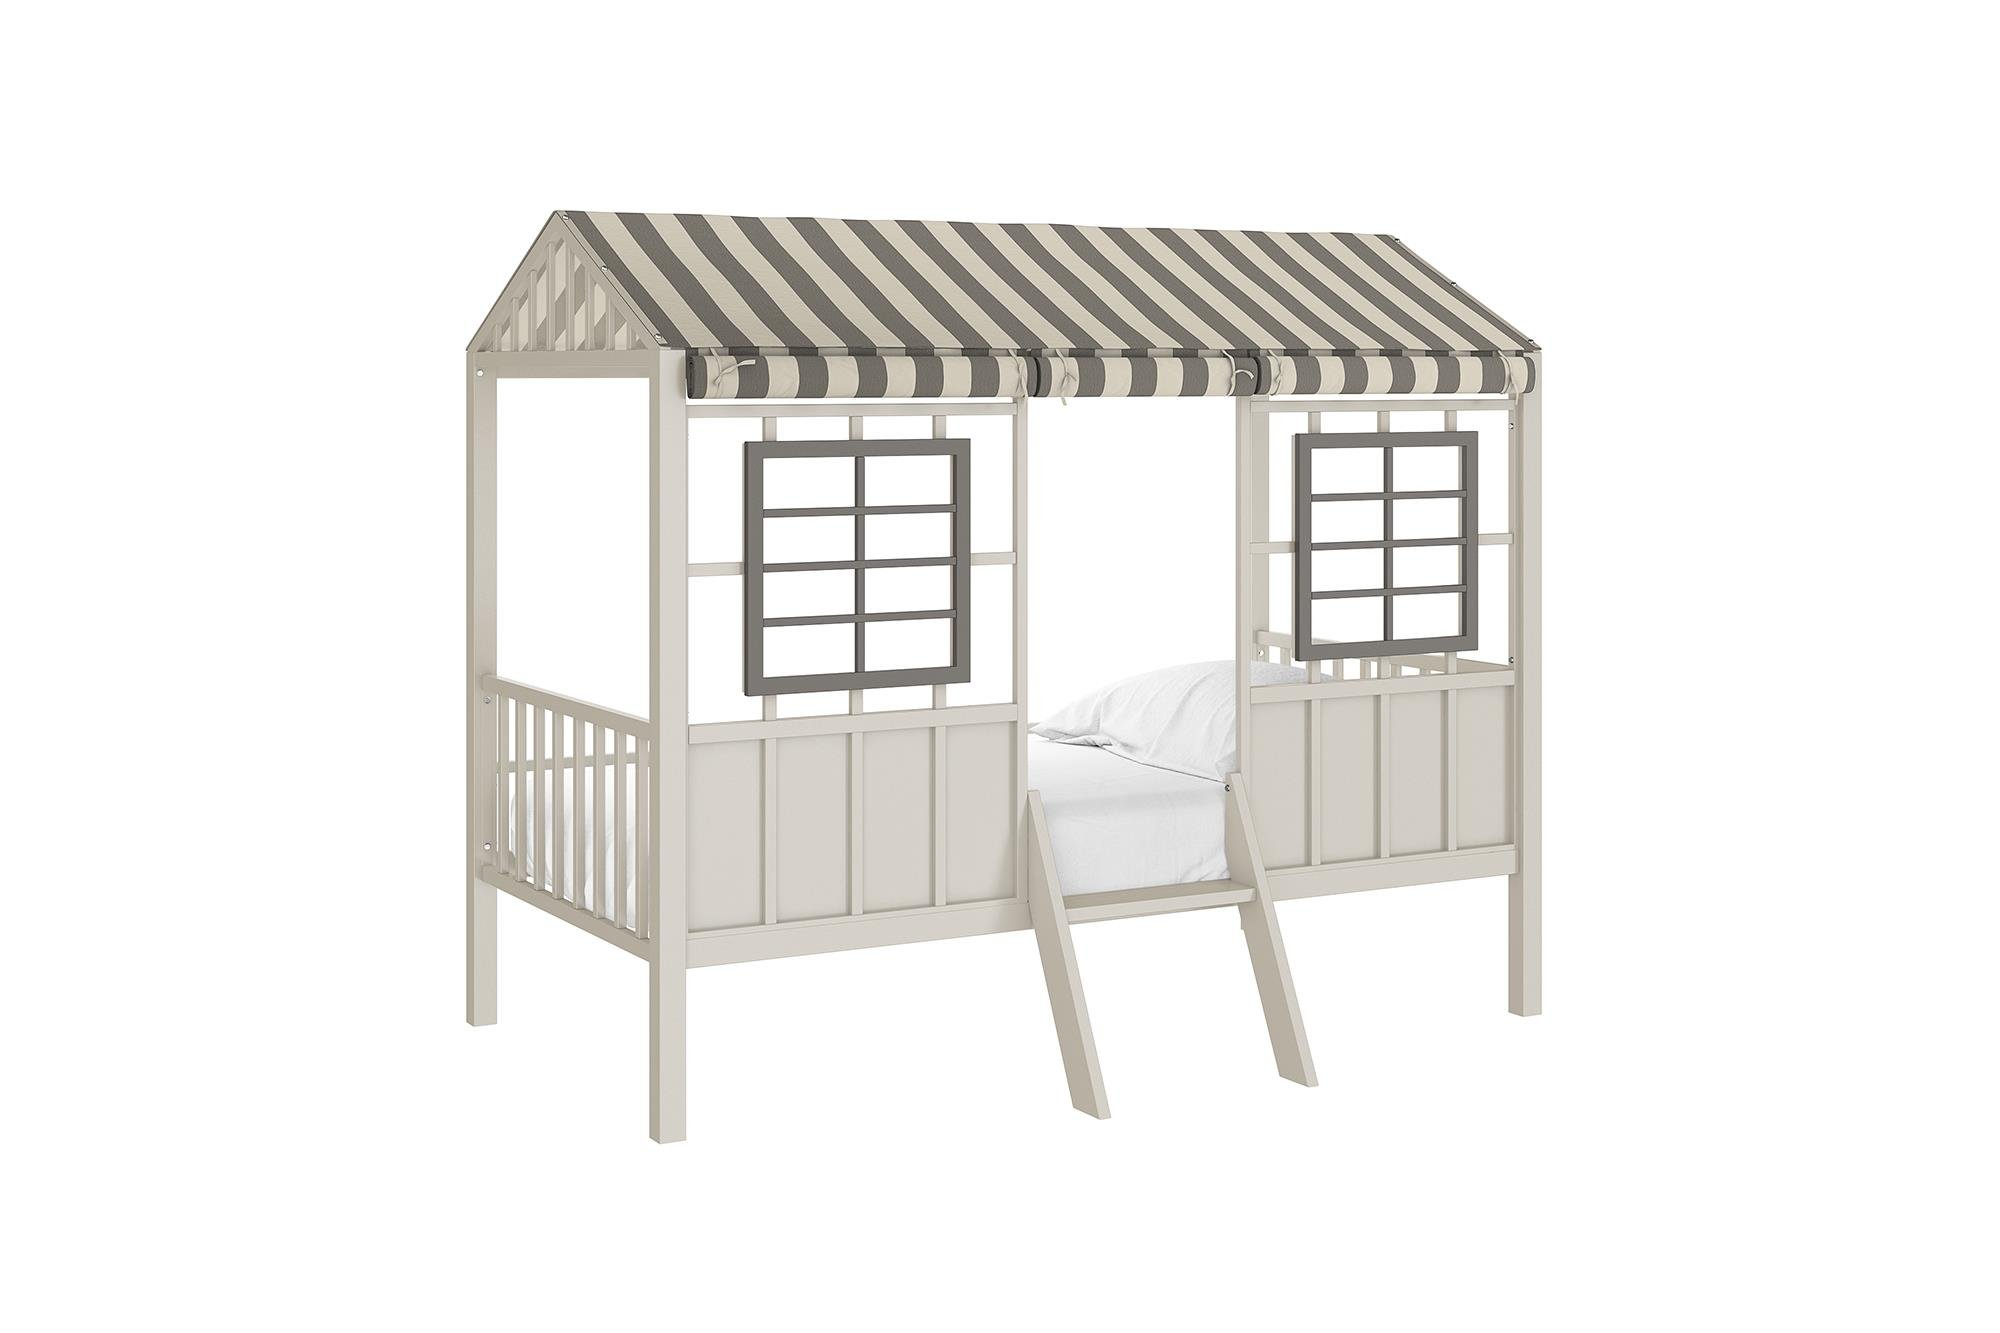 Little Seeds Rowan Valley Forest Loft Bed, Grey/Taupe, Twin by Little Seeds